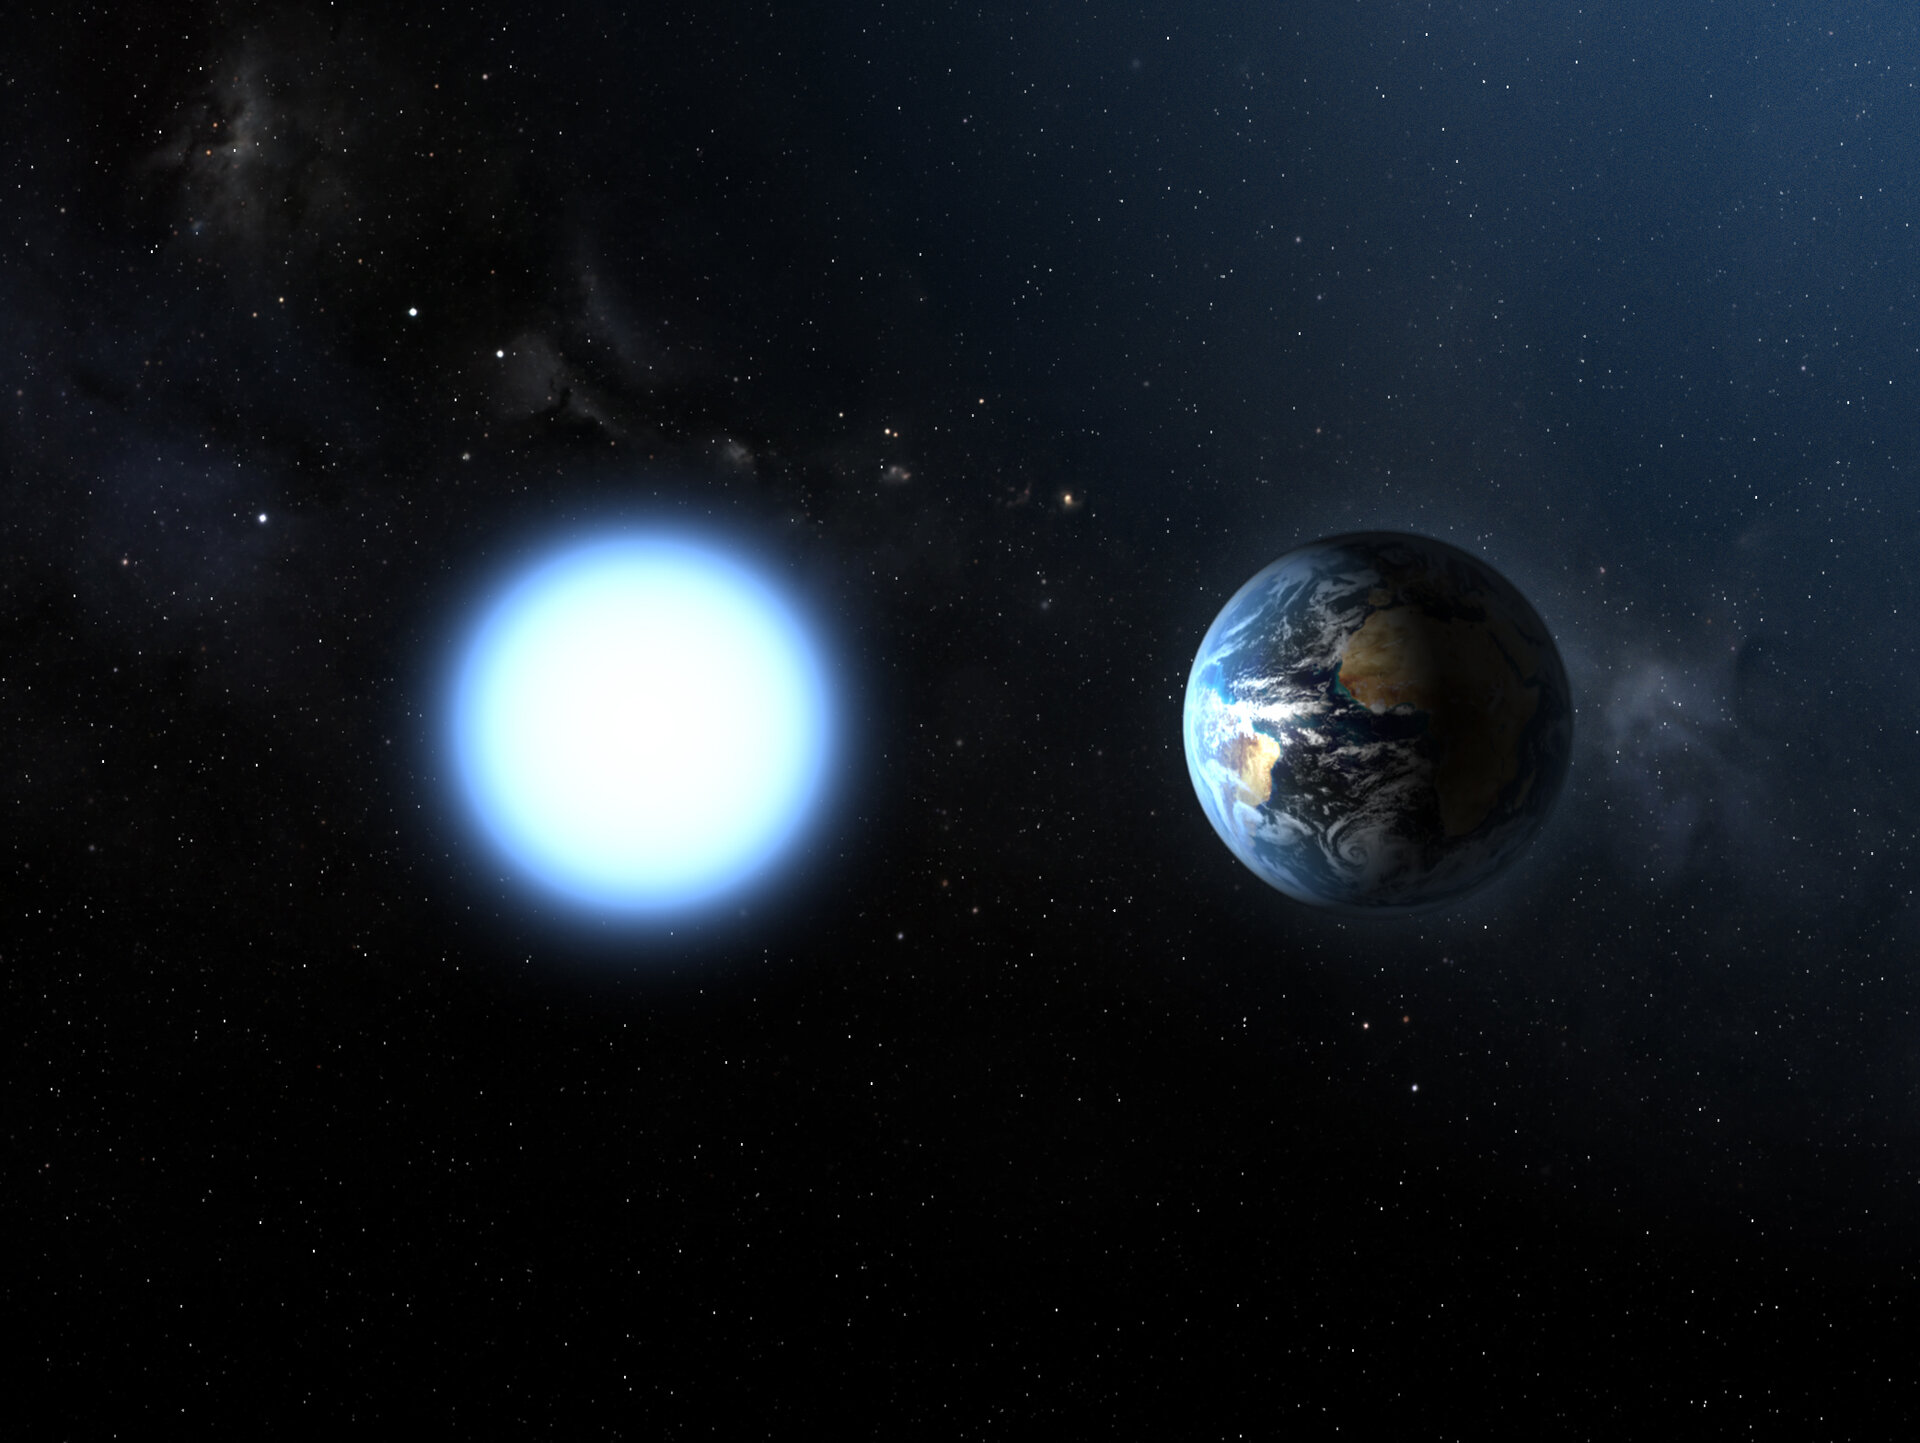 Sirius B compared to Earth